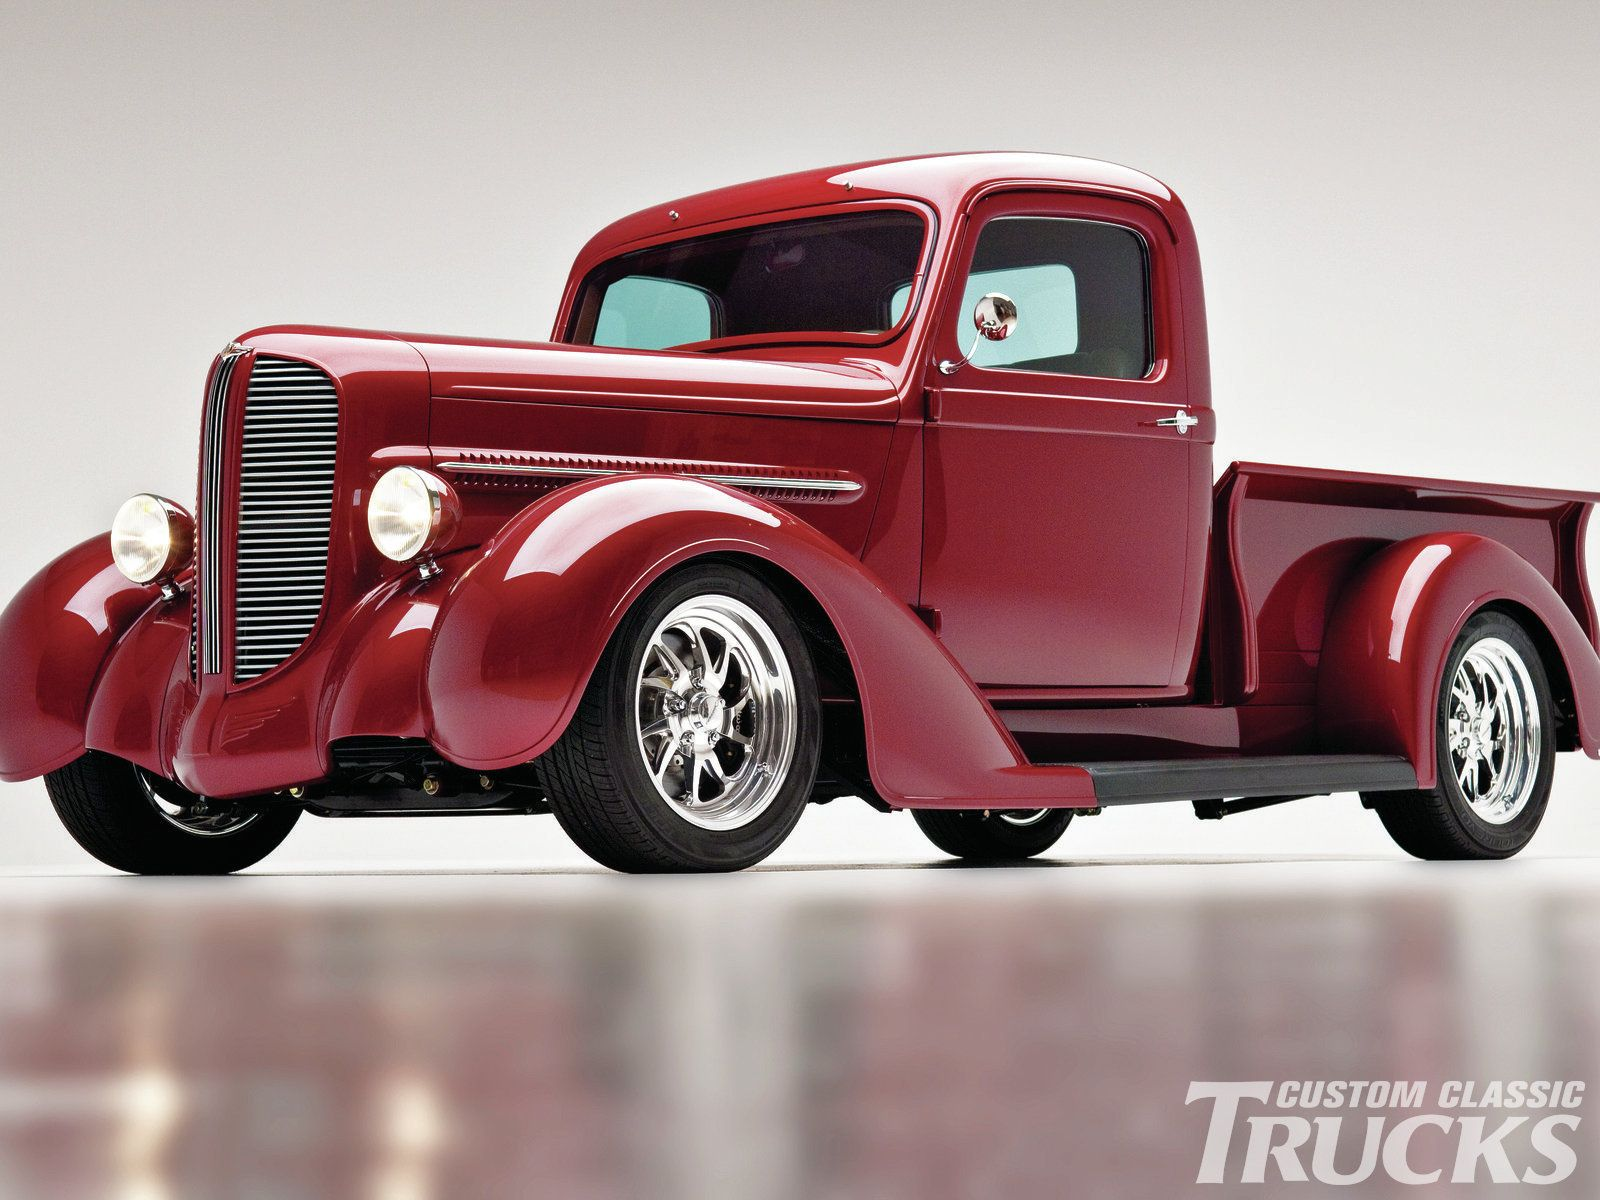 1937 Dodge truck what I would do to get this truck! I want it and if you  know me, you know that's true!